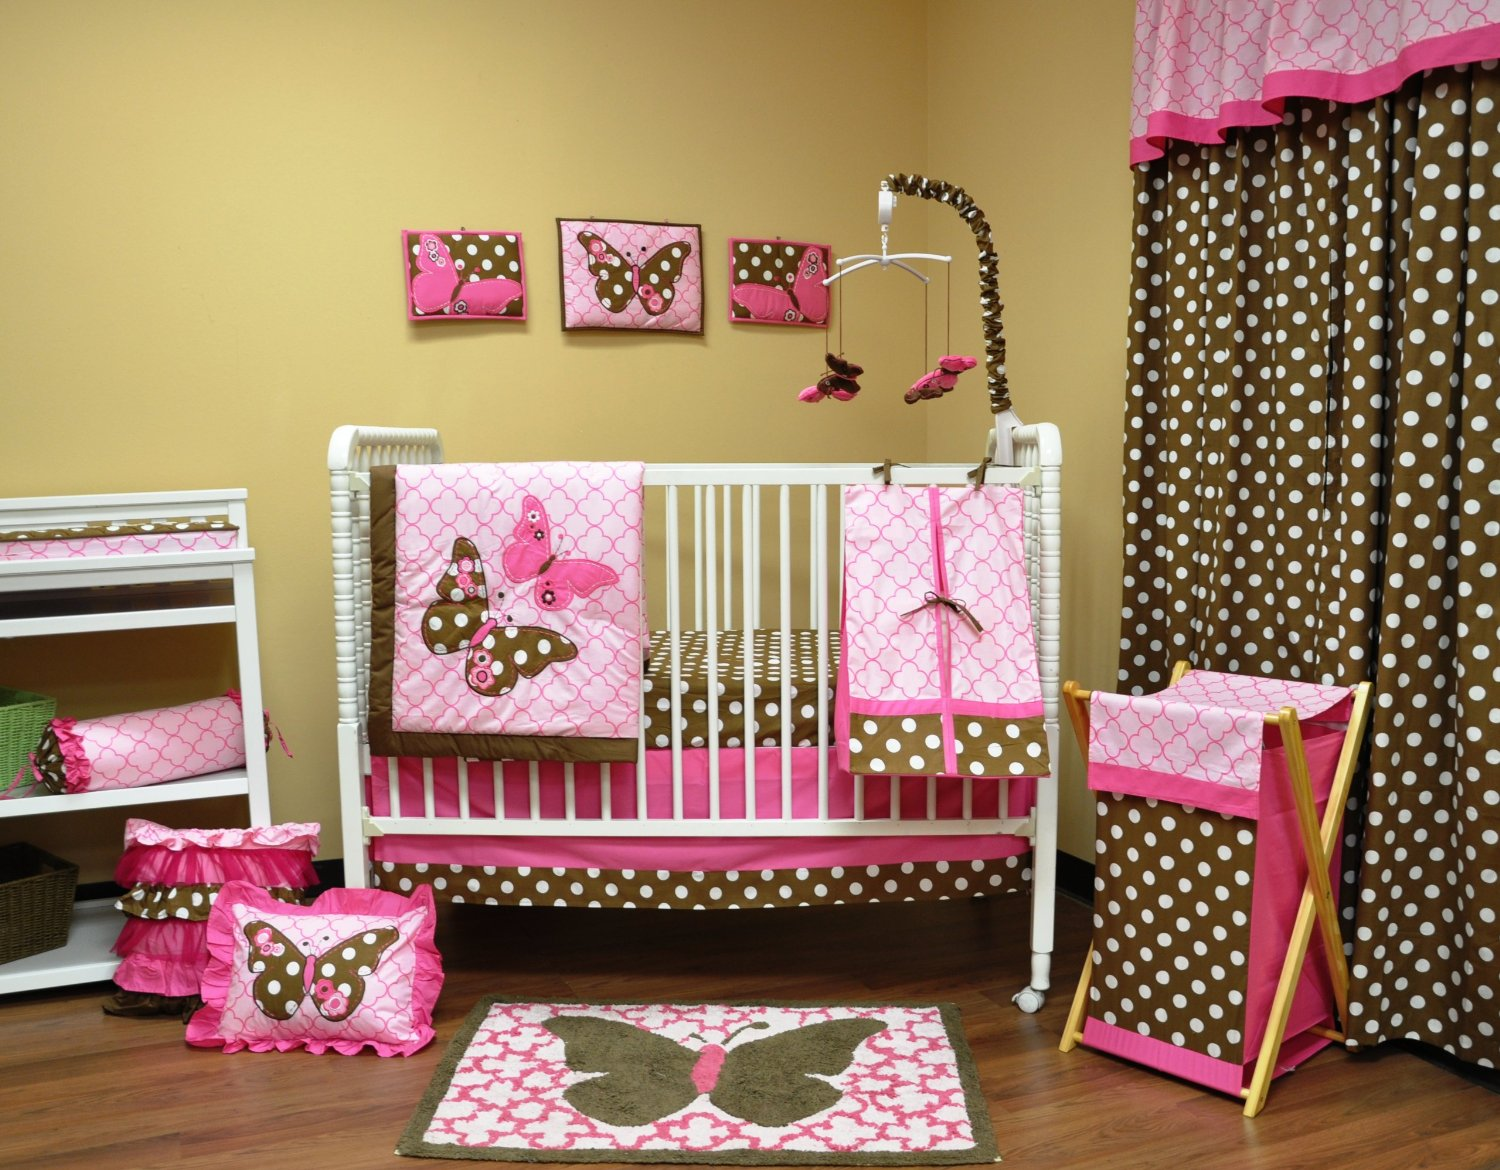 Bacati Erflies Crib Bedding And Decor